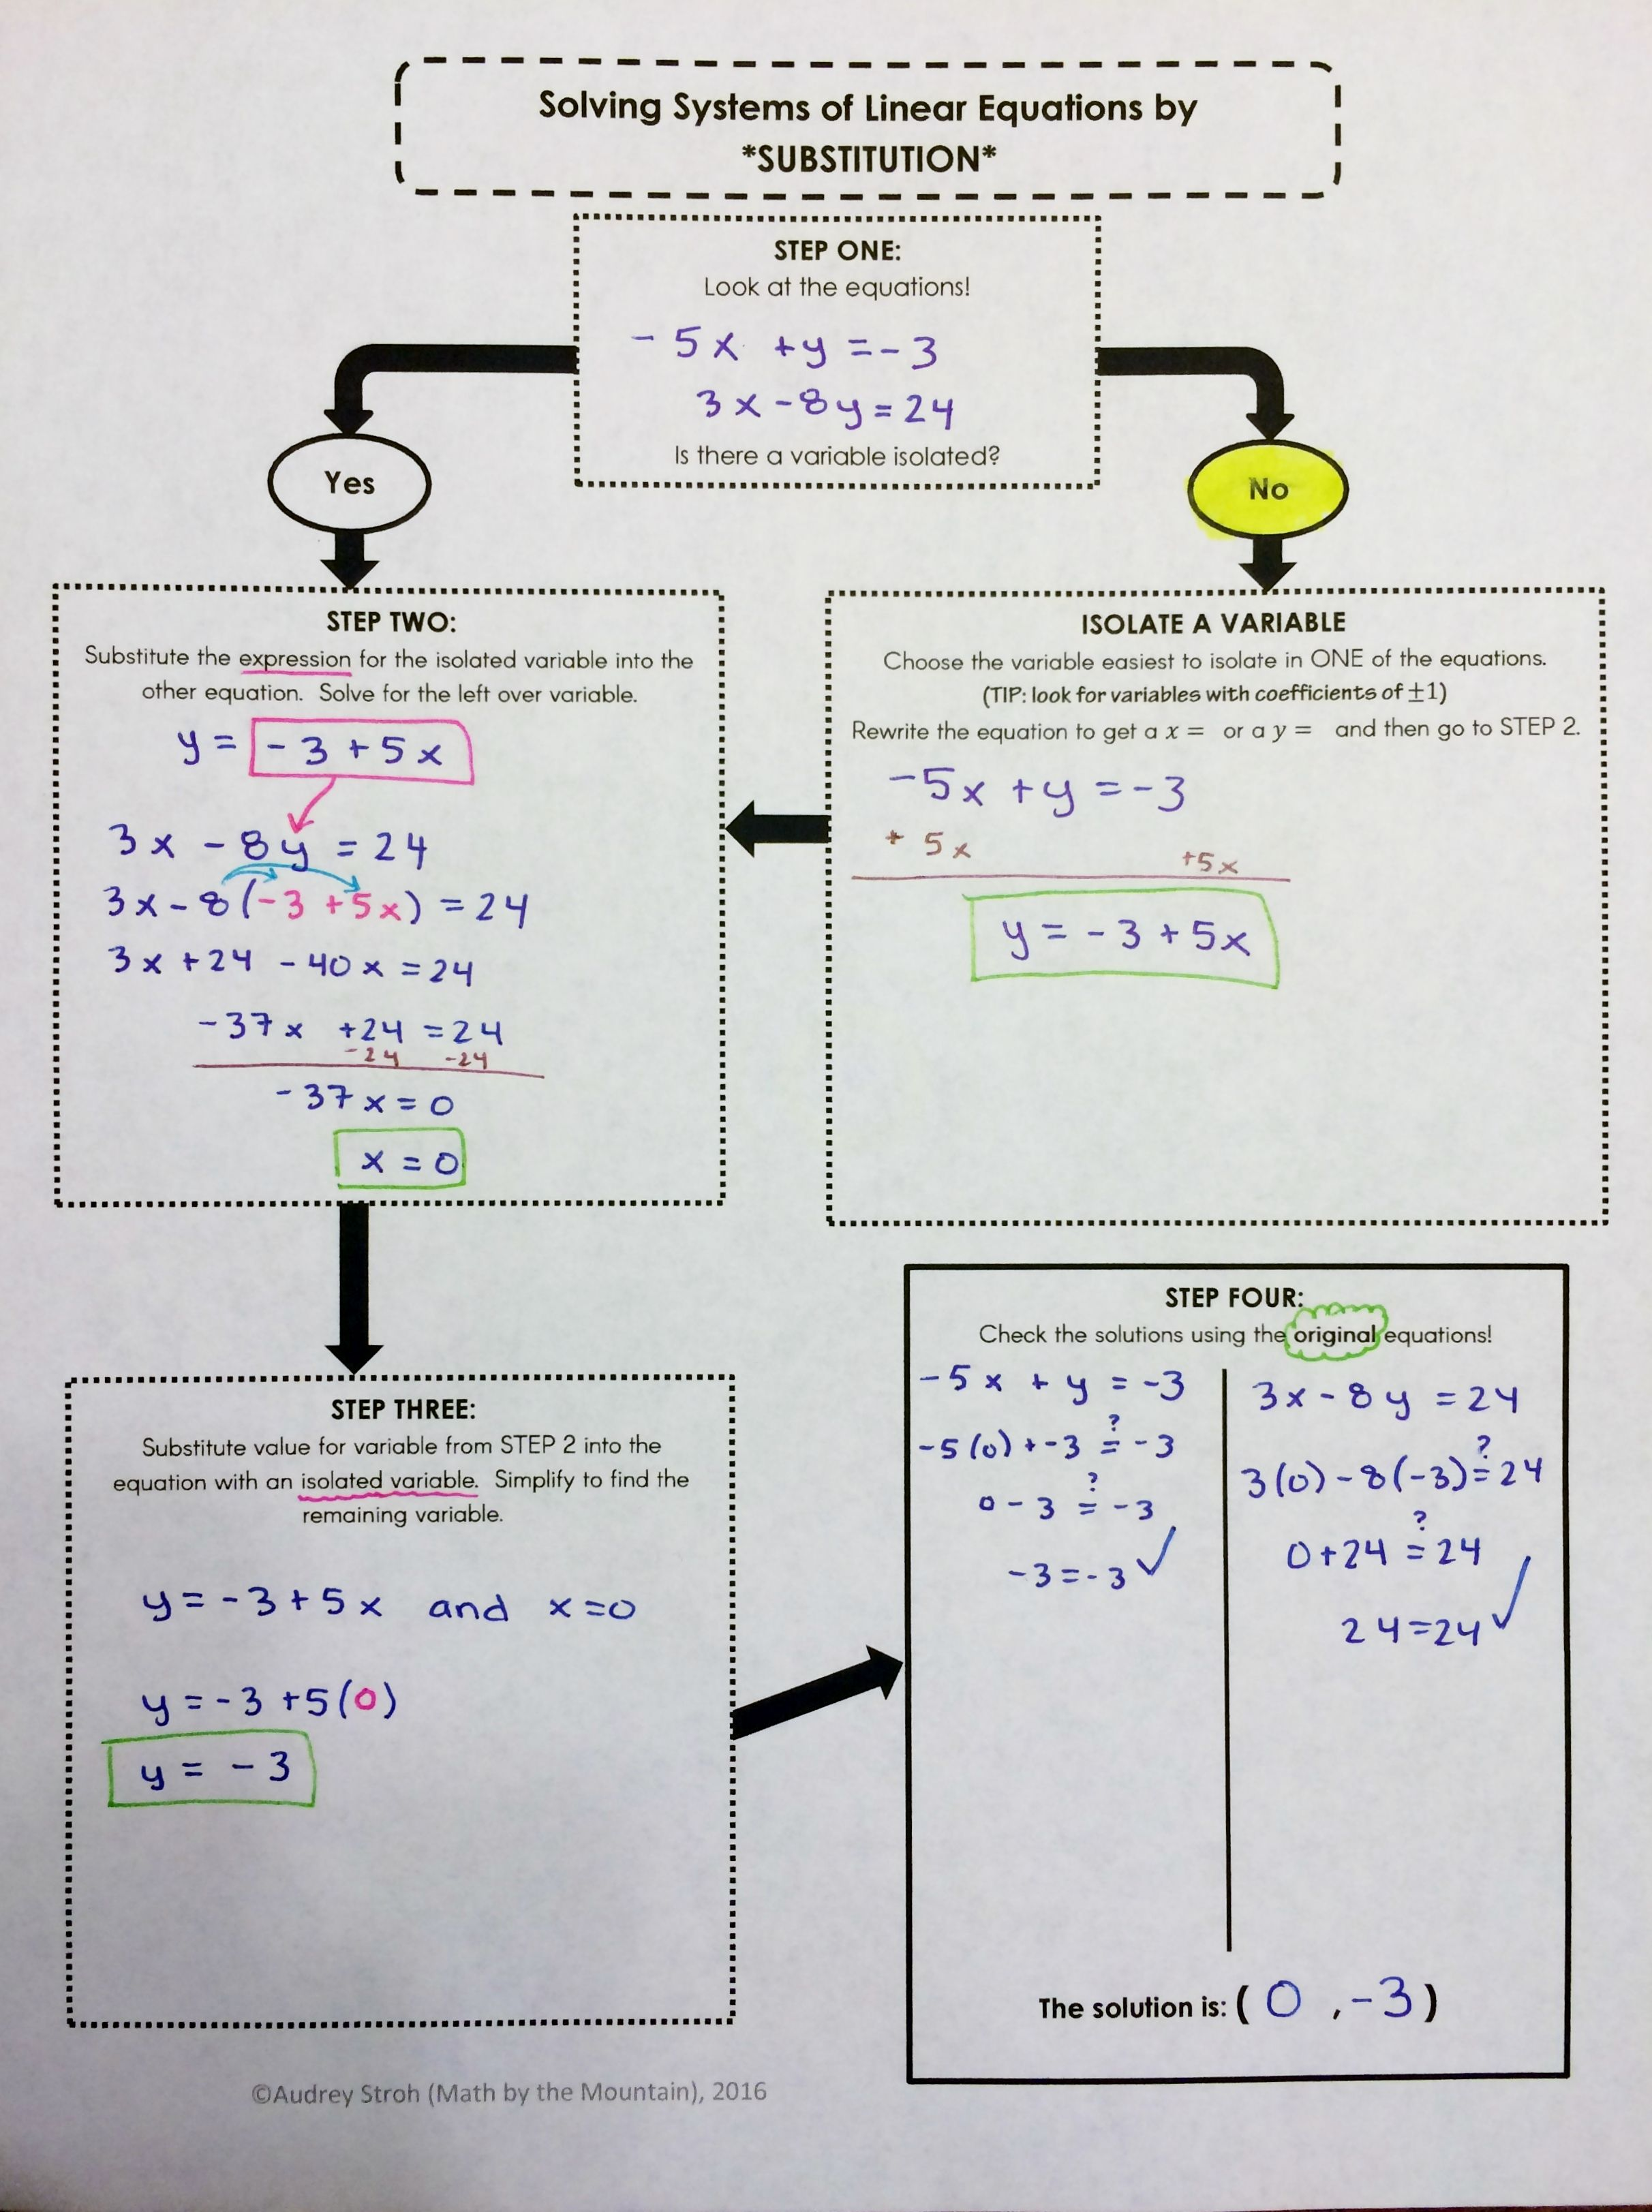 Solving Systems Of Equations By Substitution Flowchart